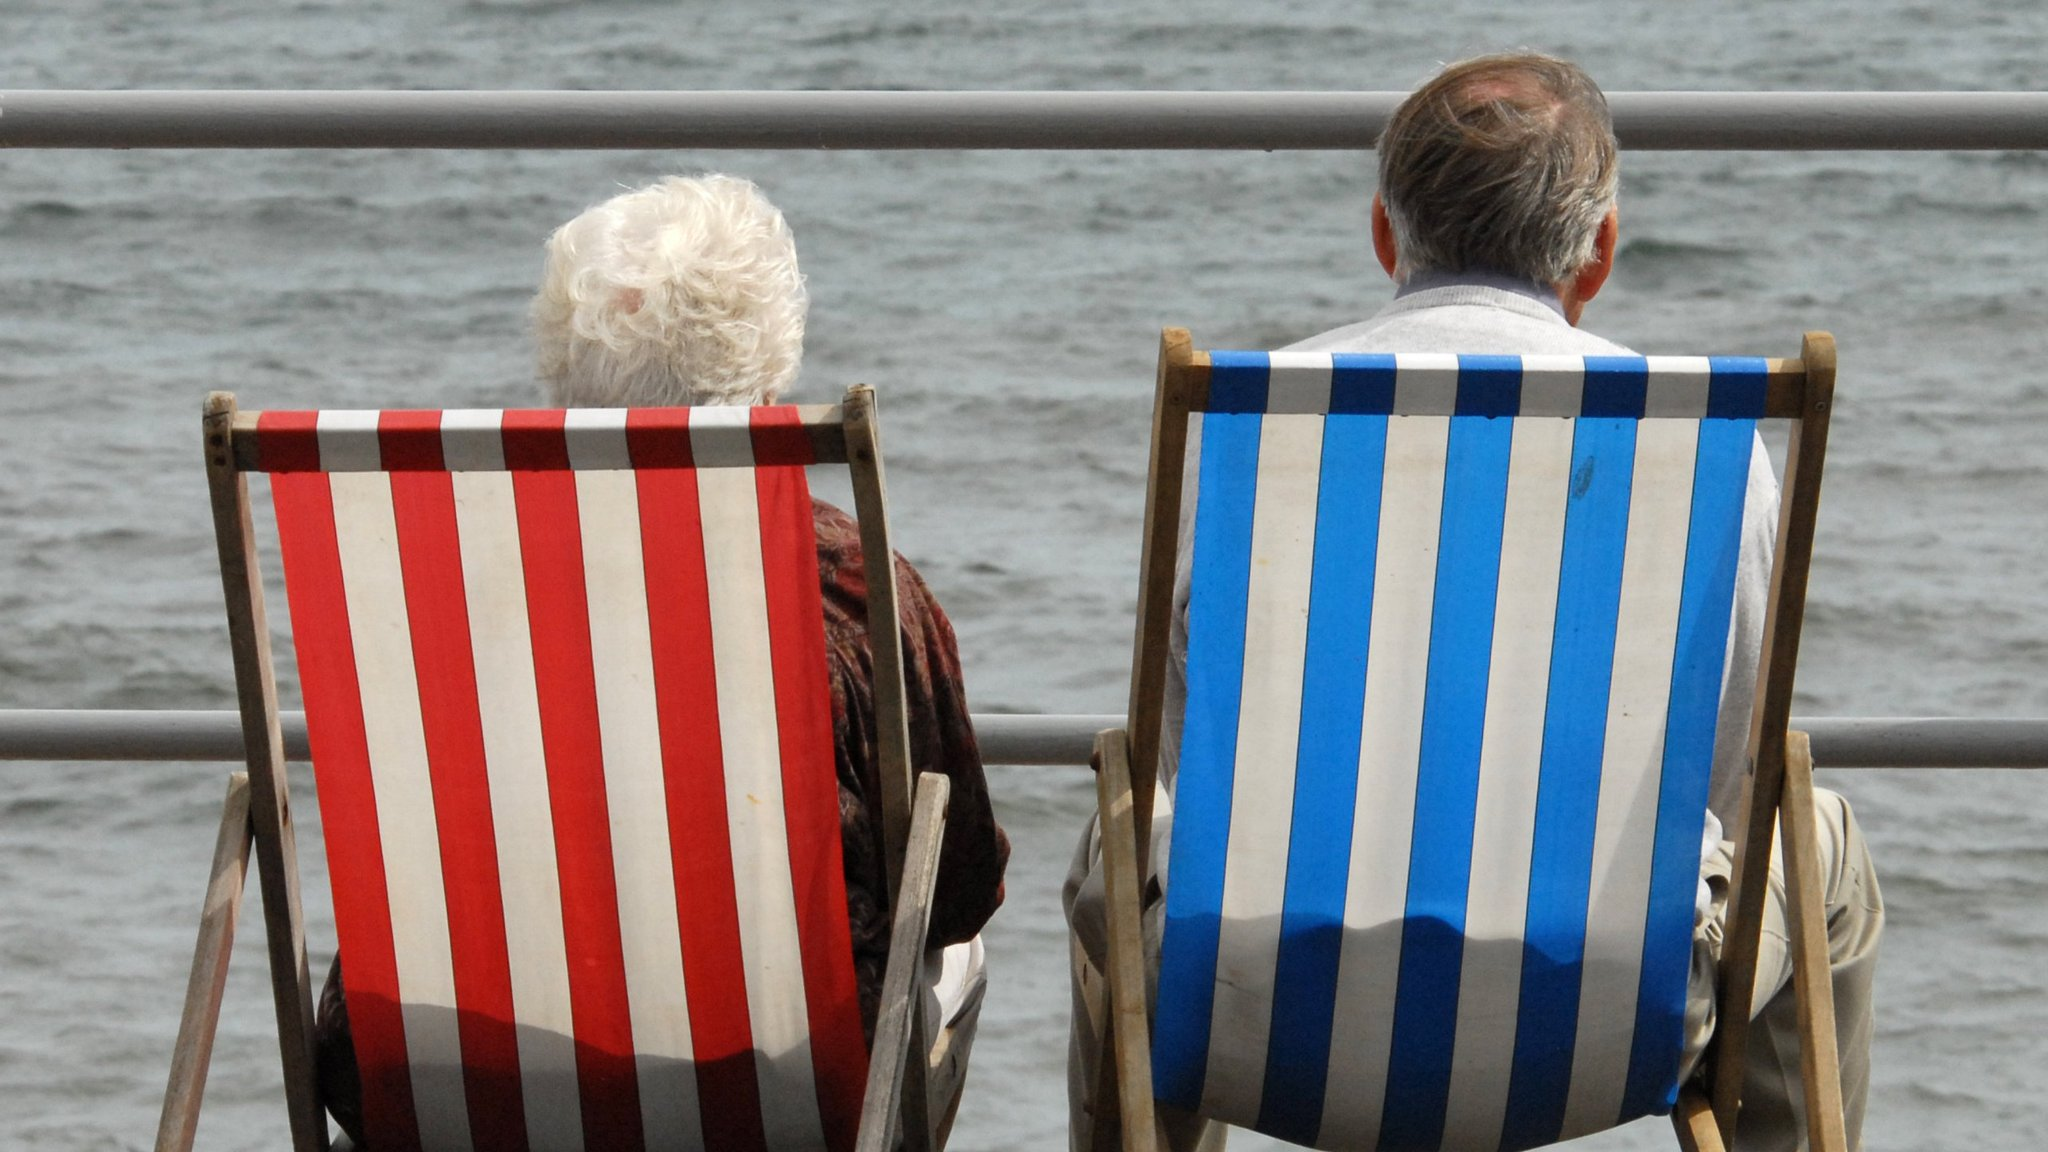 Retirees are not the only ones who need a break